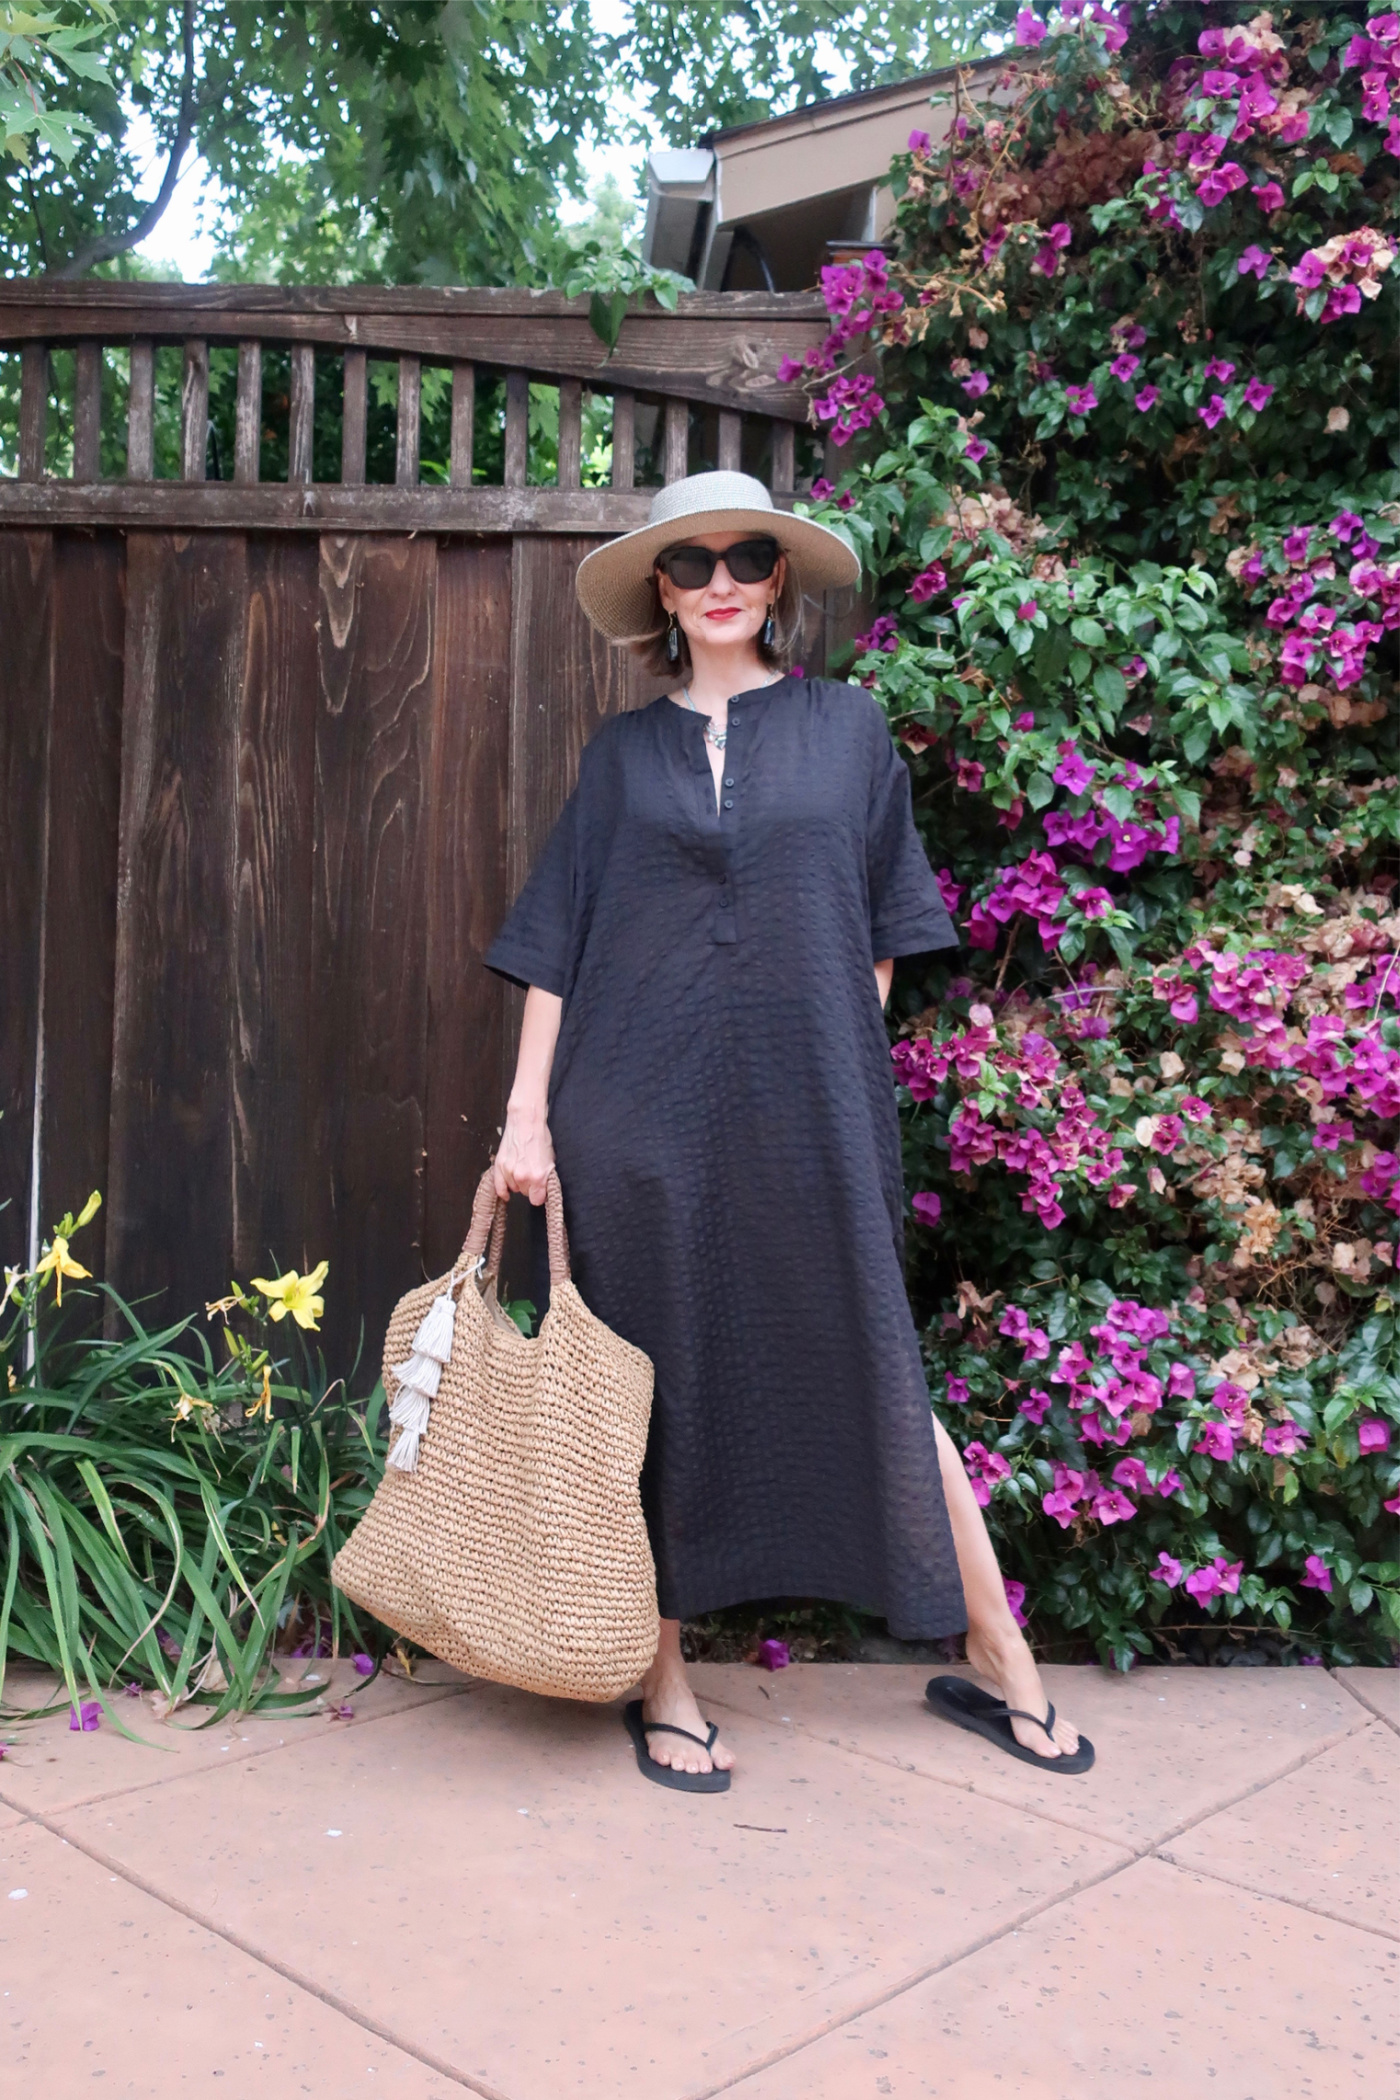 vacation style for women over 50